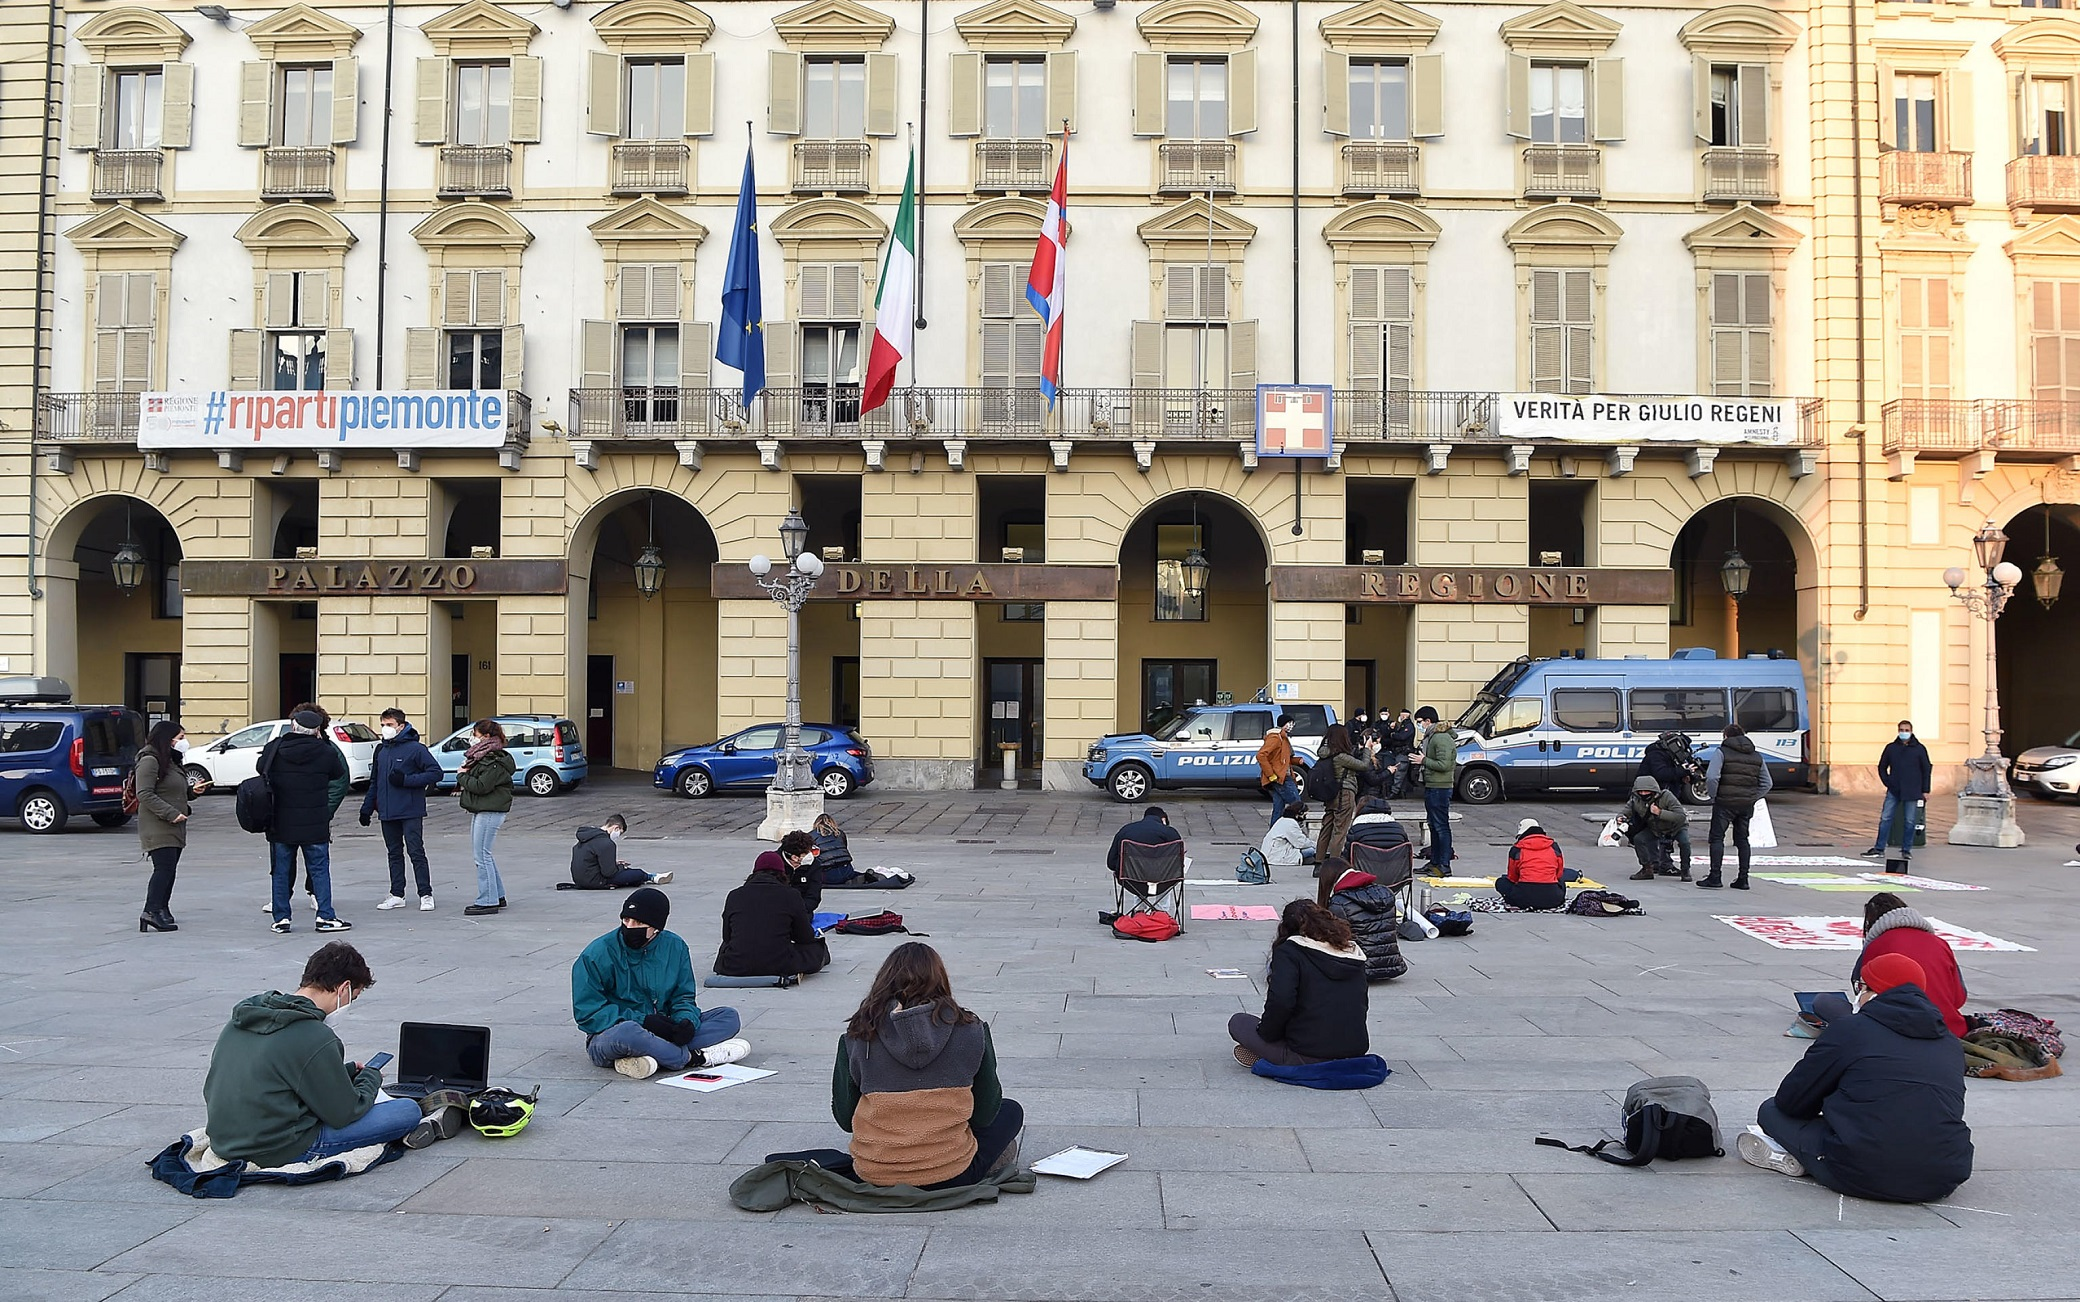 Distance learning students study outdoors in front of the 'Regione Piemonte'palace in Castello Square during the coronavirus Covid-19 pandemic emergency in Turin, Italy, 26 November 2020. ANSA/ALESSANDRO DI MARCO